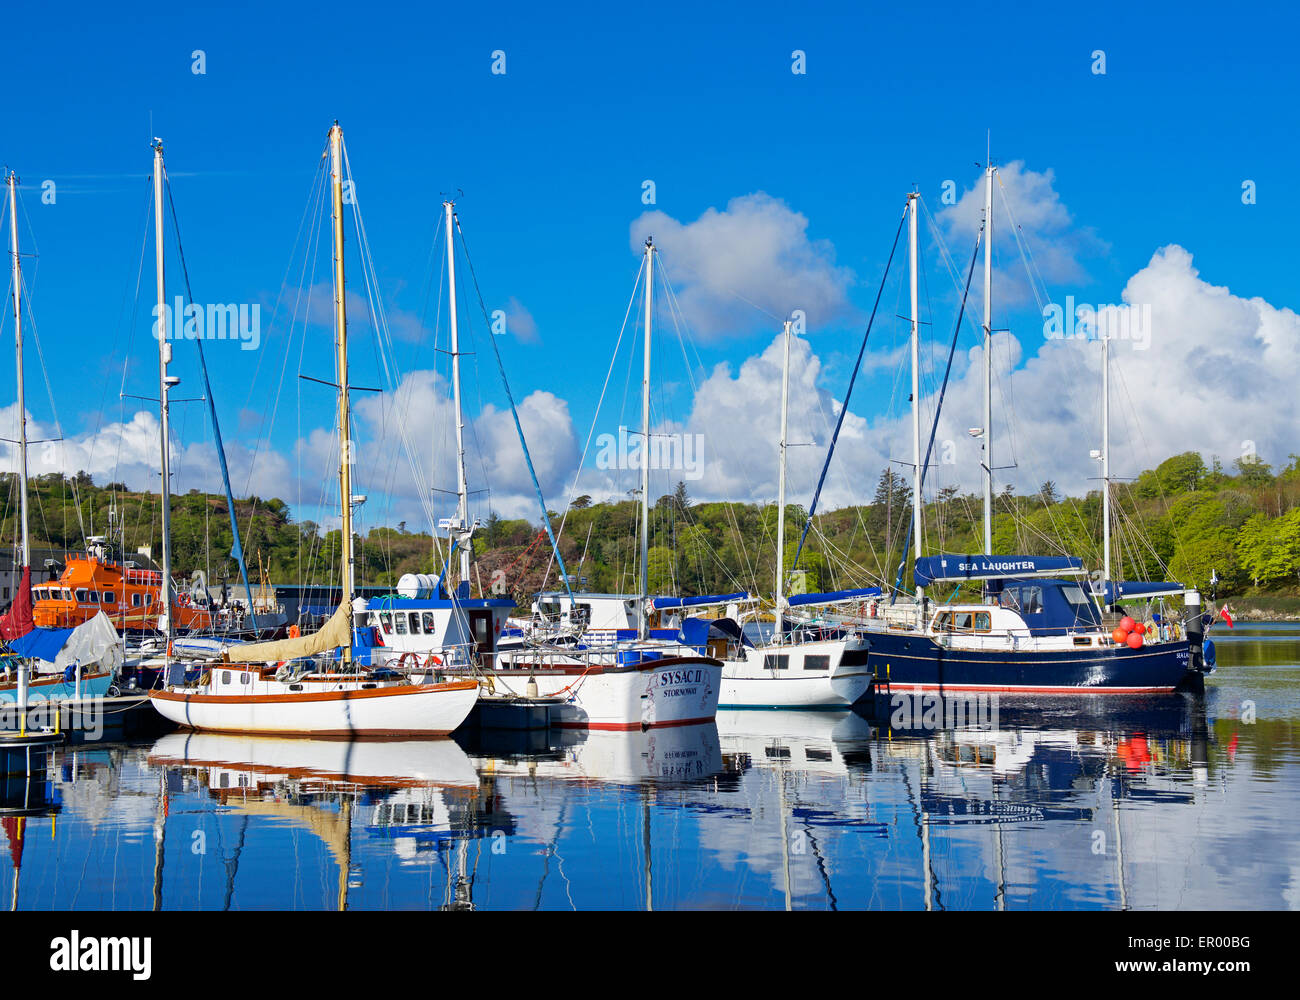 The marina, Stornoway, Isle of Lewis, Outer Hebrides, Scotland UK - Stock Image